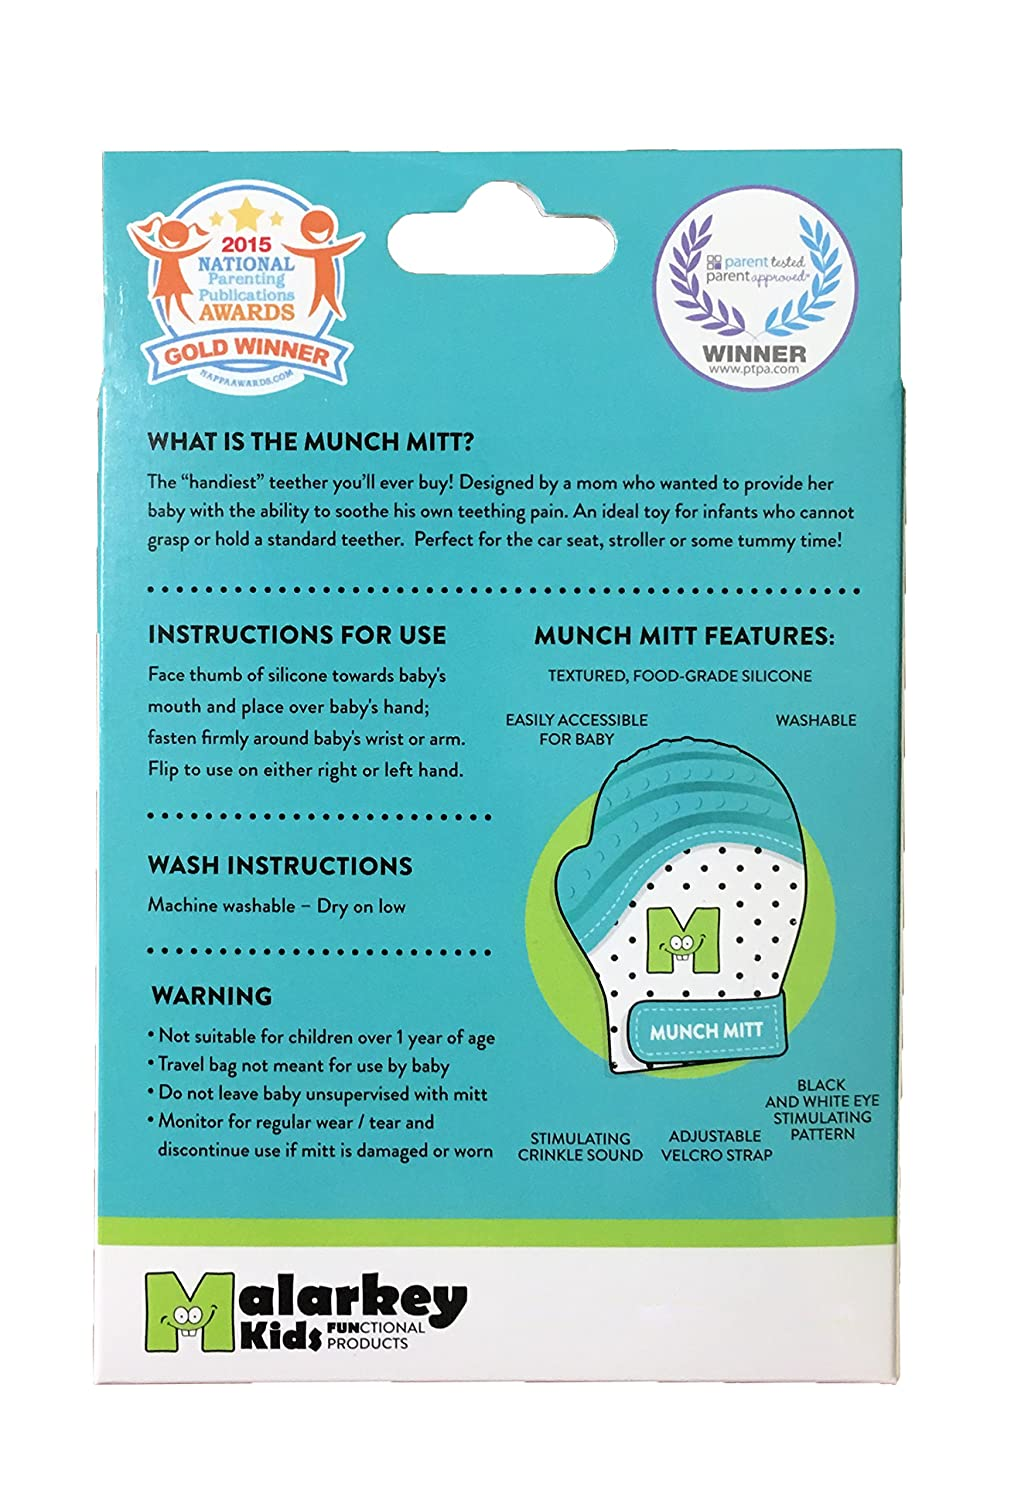 Ideal Baby Shower Gift with Handy Travel//Laundry Bag Original Mom Invented Teething Toy Teether Stays on Babys Hand for Pain Relief Munch Mitt Trendy Collection Teething Mitten 2 pk Aqua Blue XO Malarkey Kids